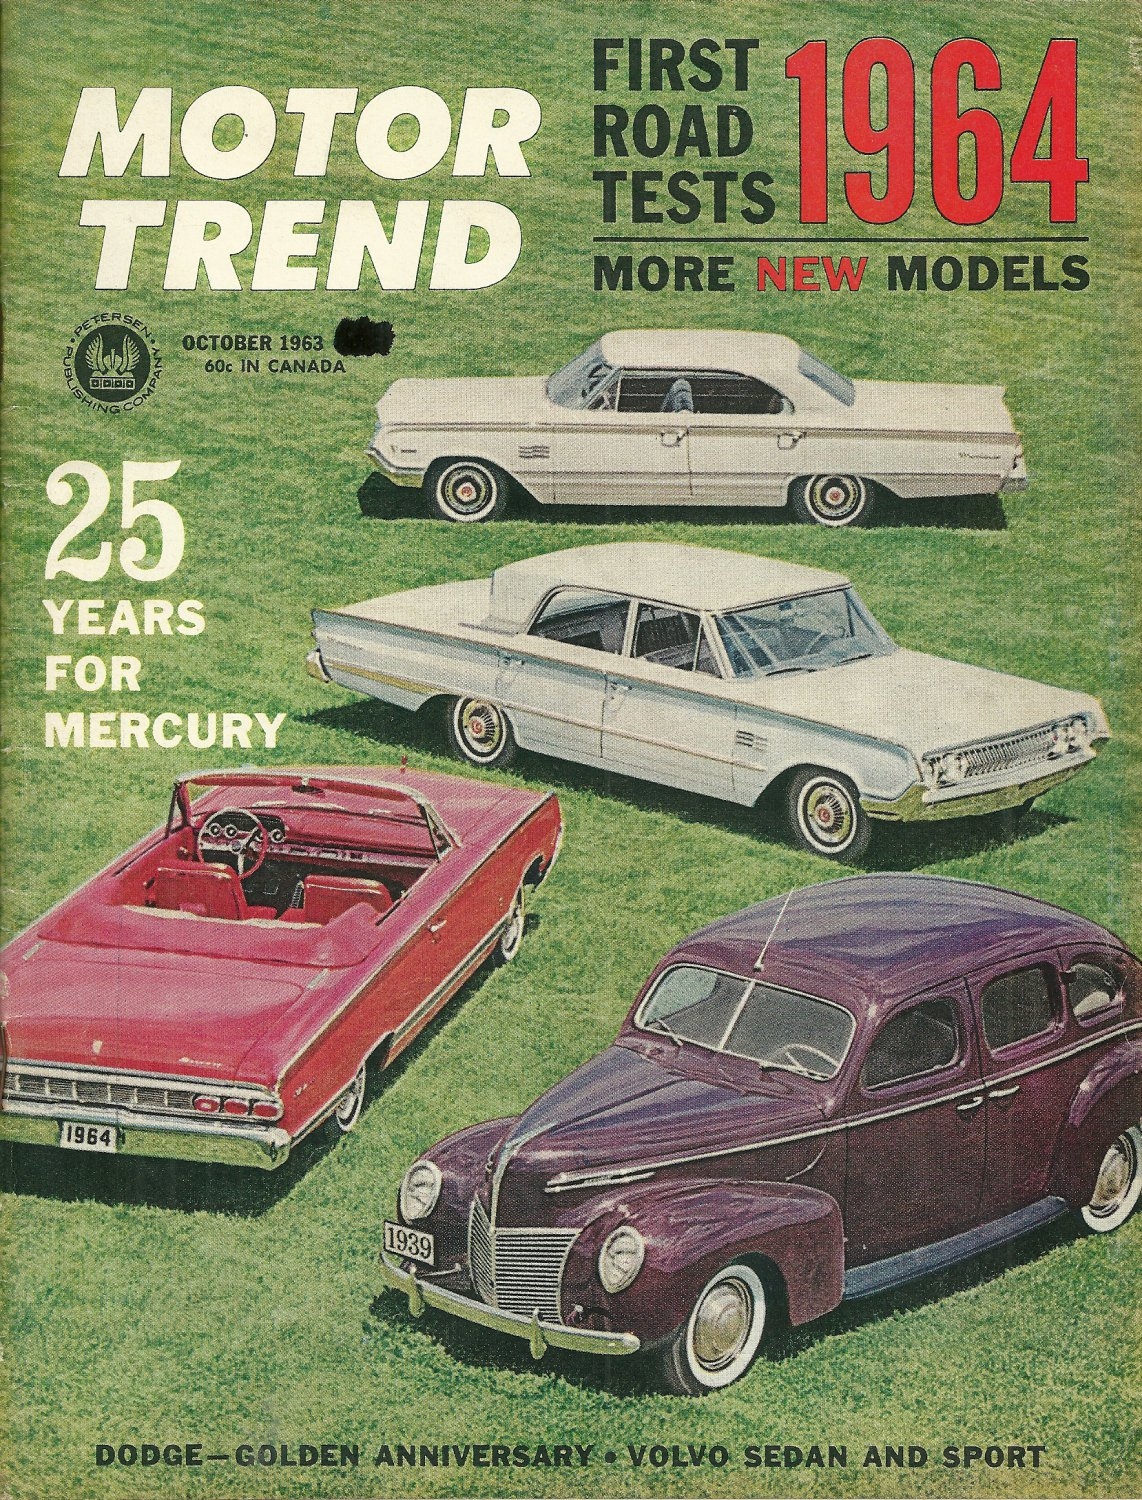 motor trend magazine october 1963 first 1964 road tests volvo 122 s and p1800s. Black Bedroom Furniture Sets. Home Design Ideas